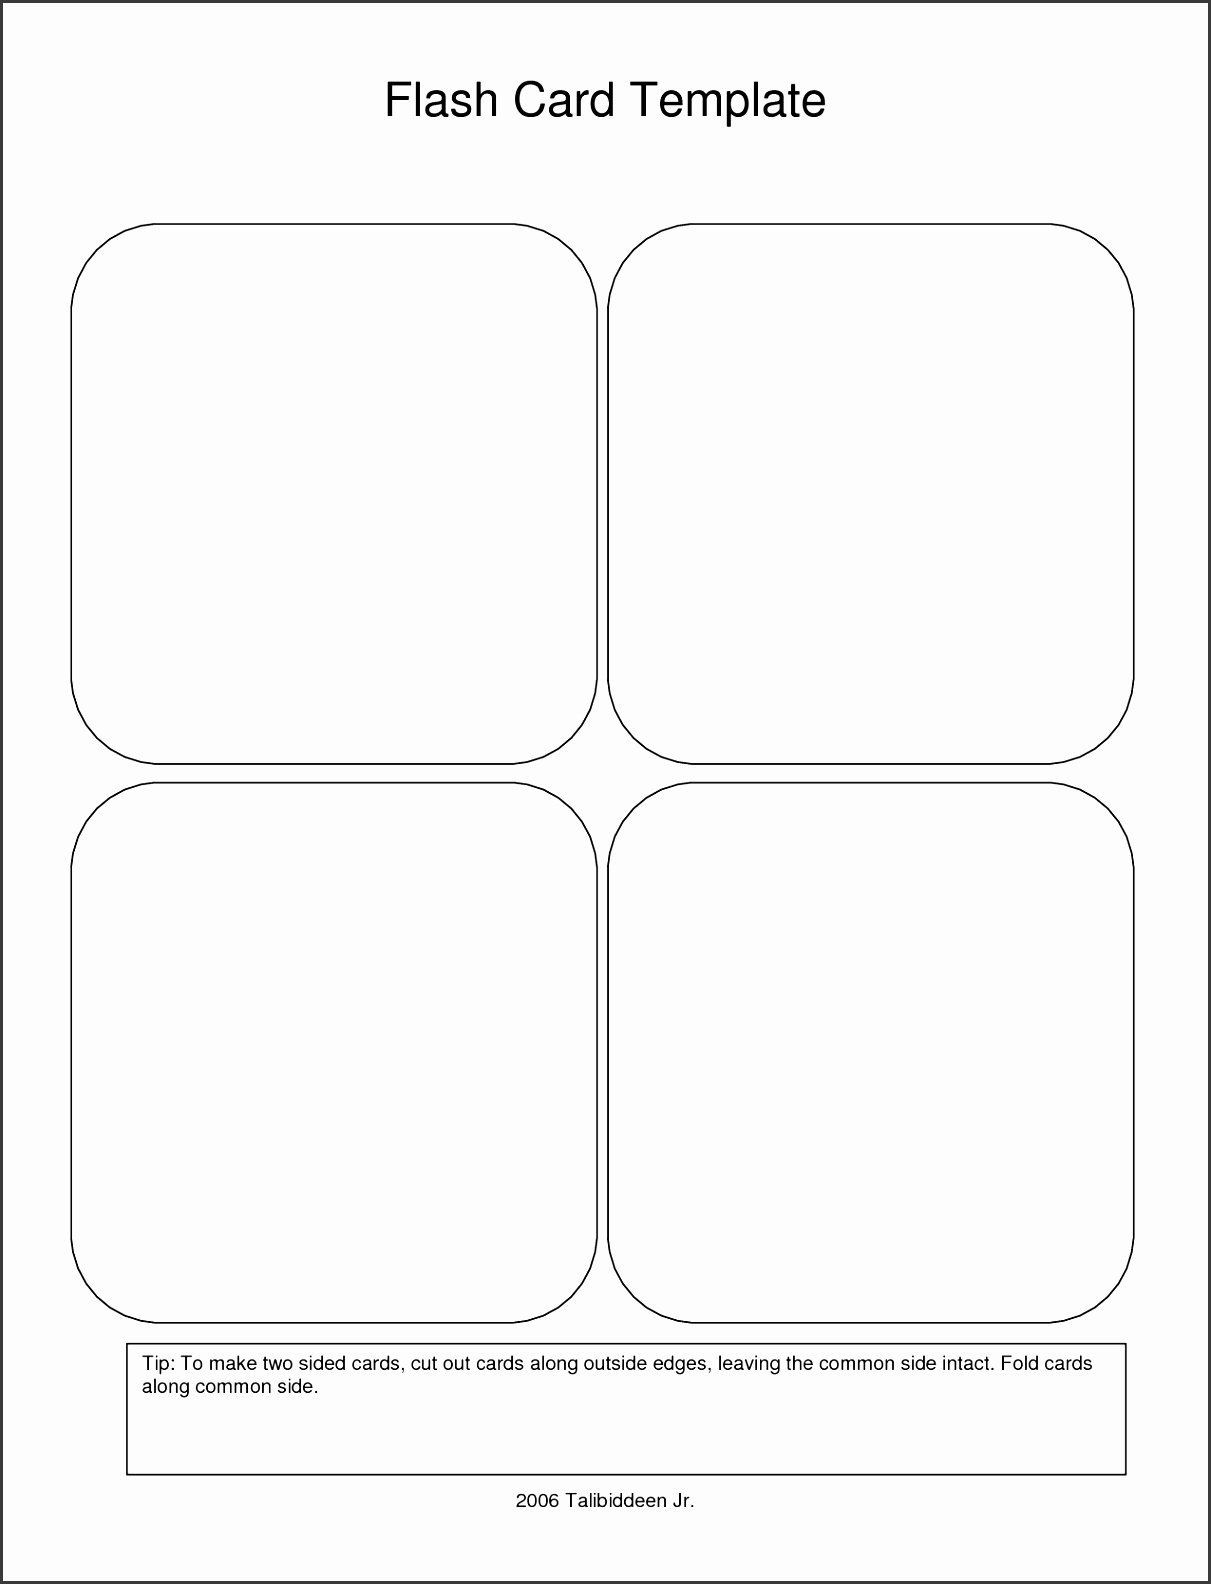 Word Flash Card Template New 9 Free Printable Flash Card Template Sampletemplate Printable Flash Cards Free Printable Card Templates Free Printable Flash Cards